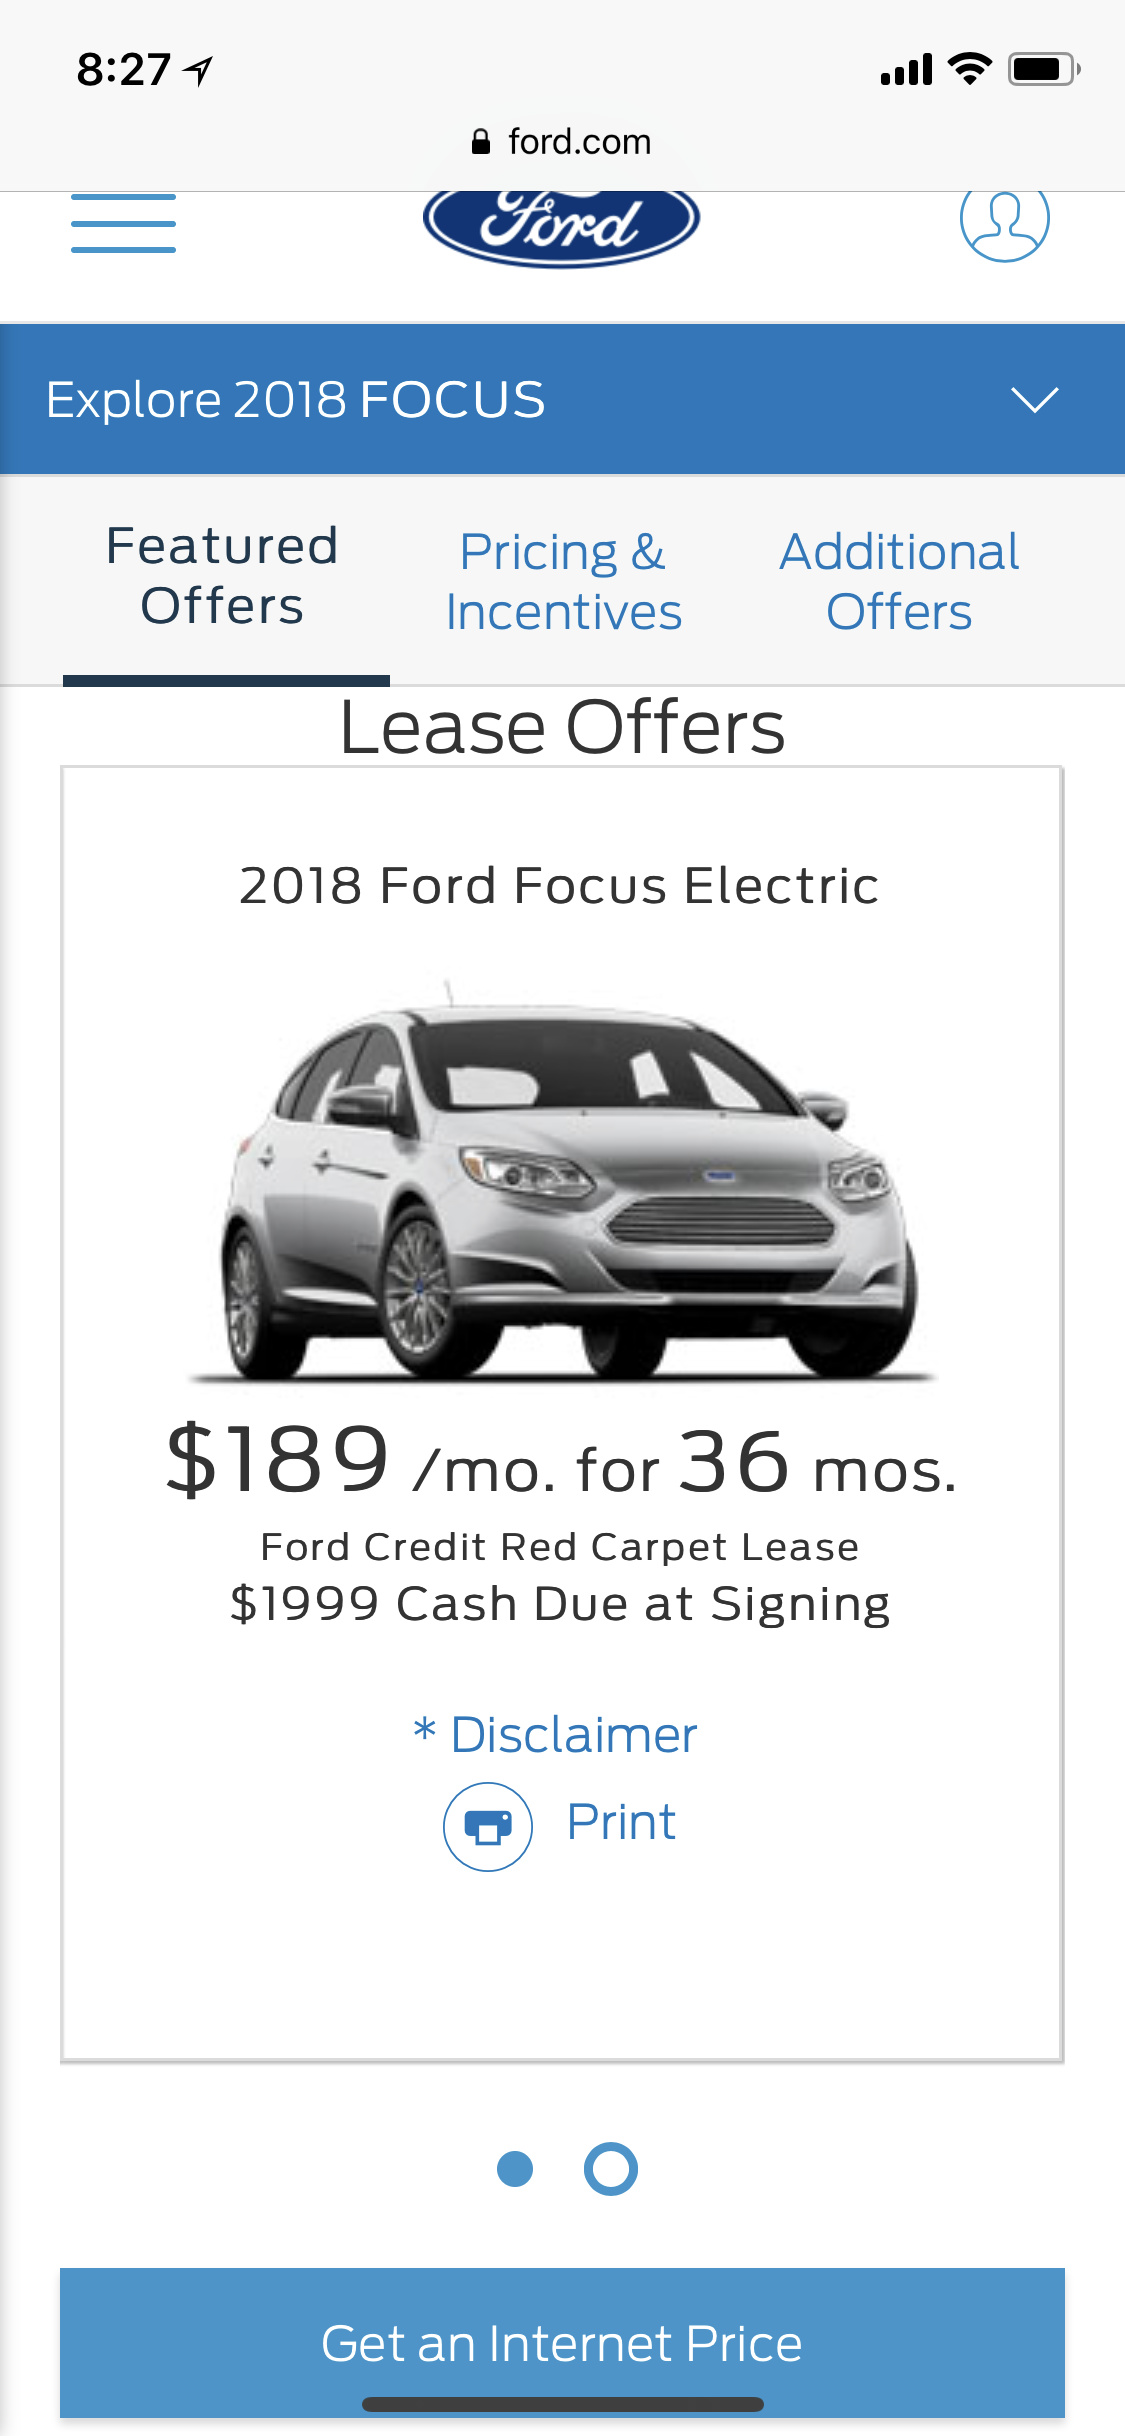 Ford Focus Electric Lease Is This Good Deal